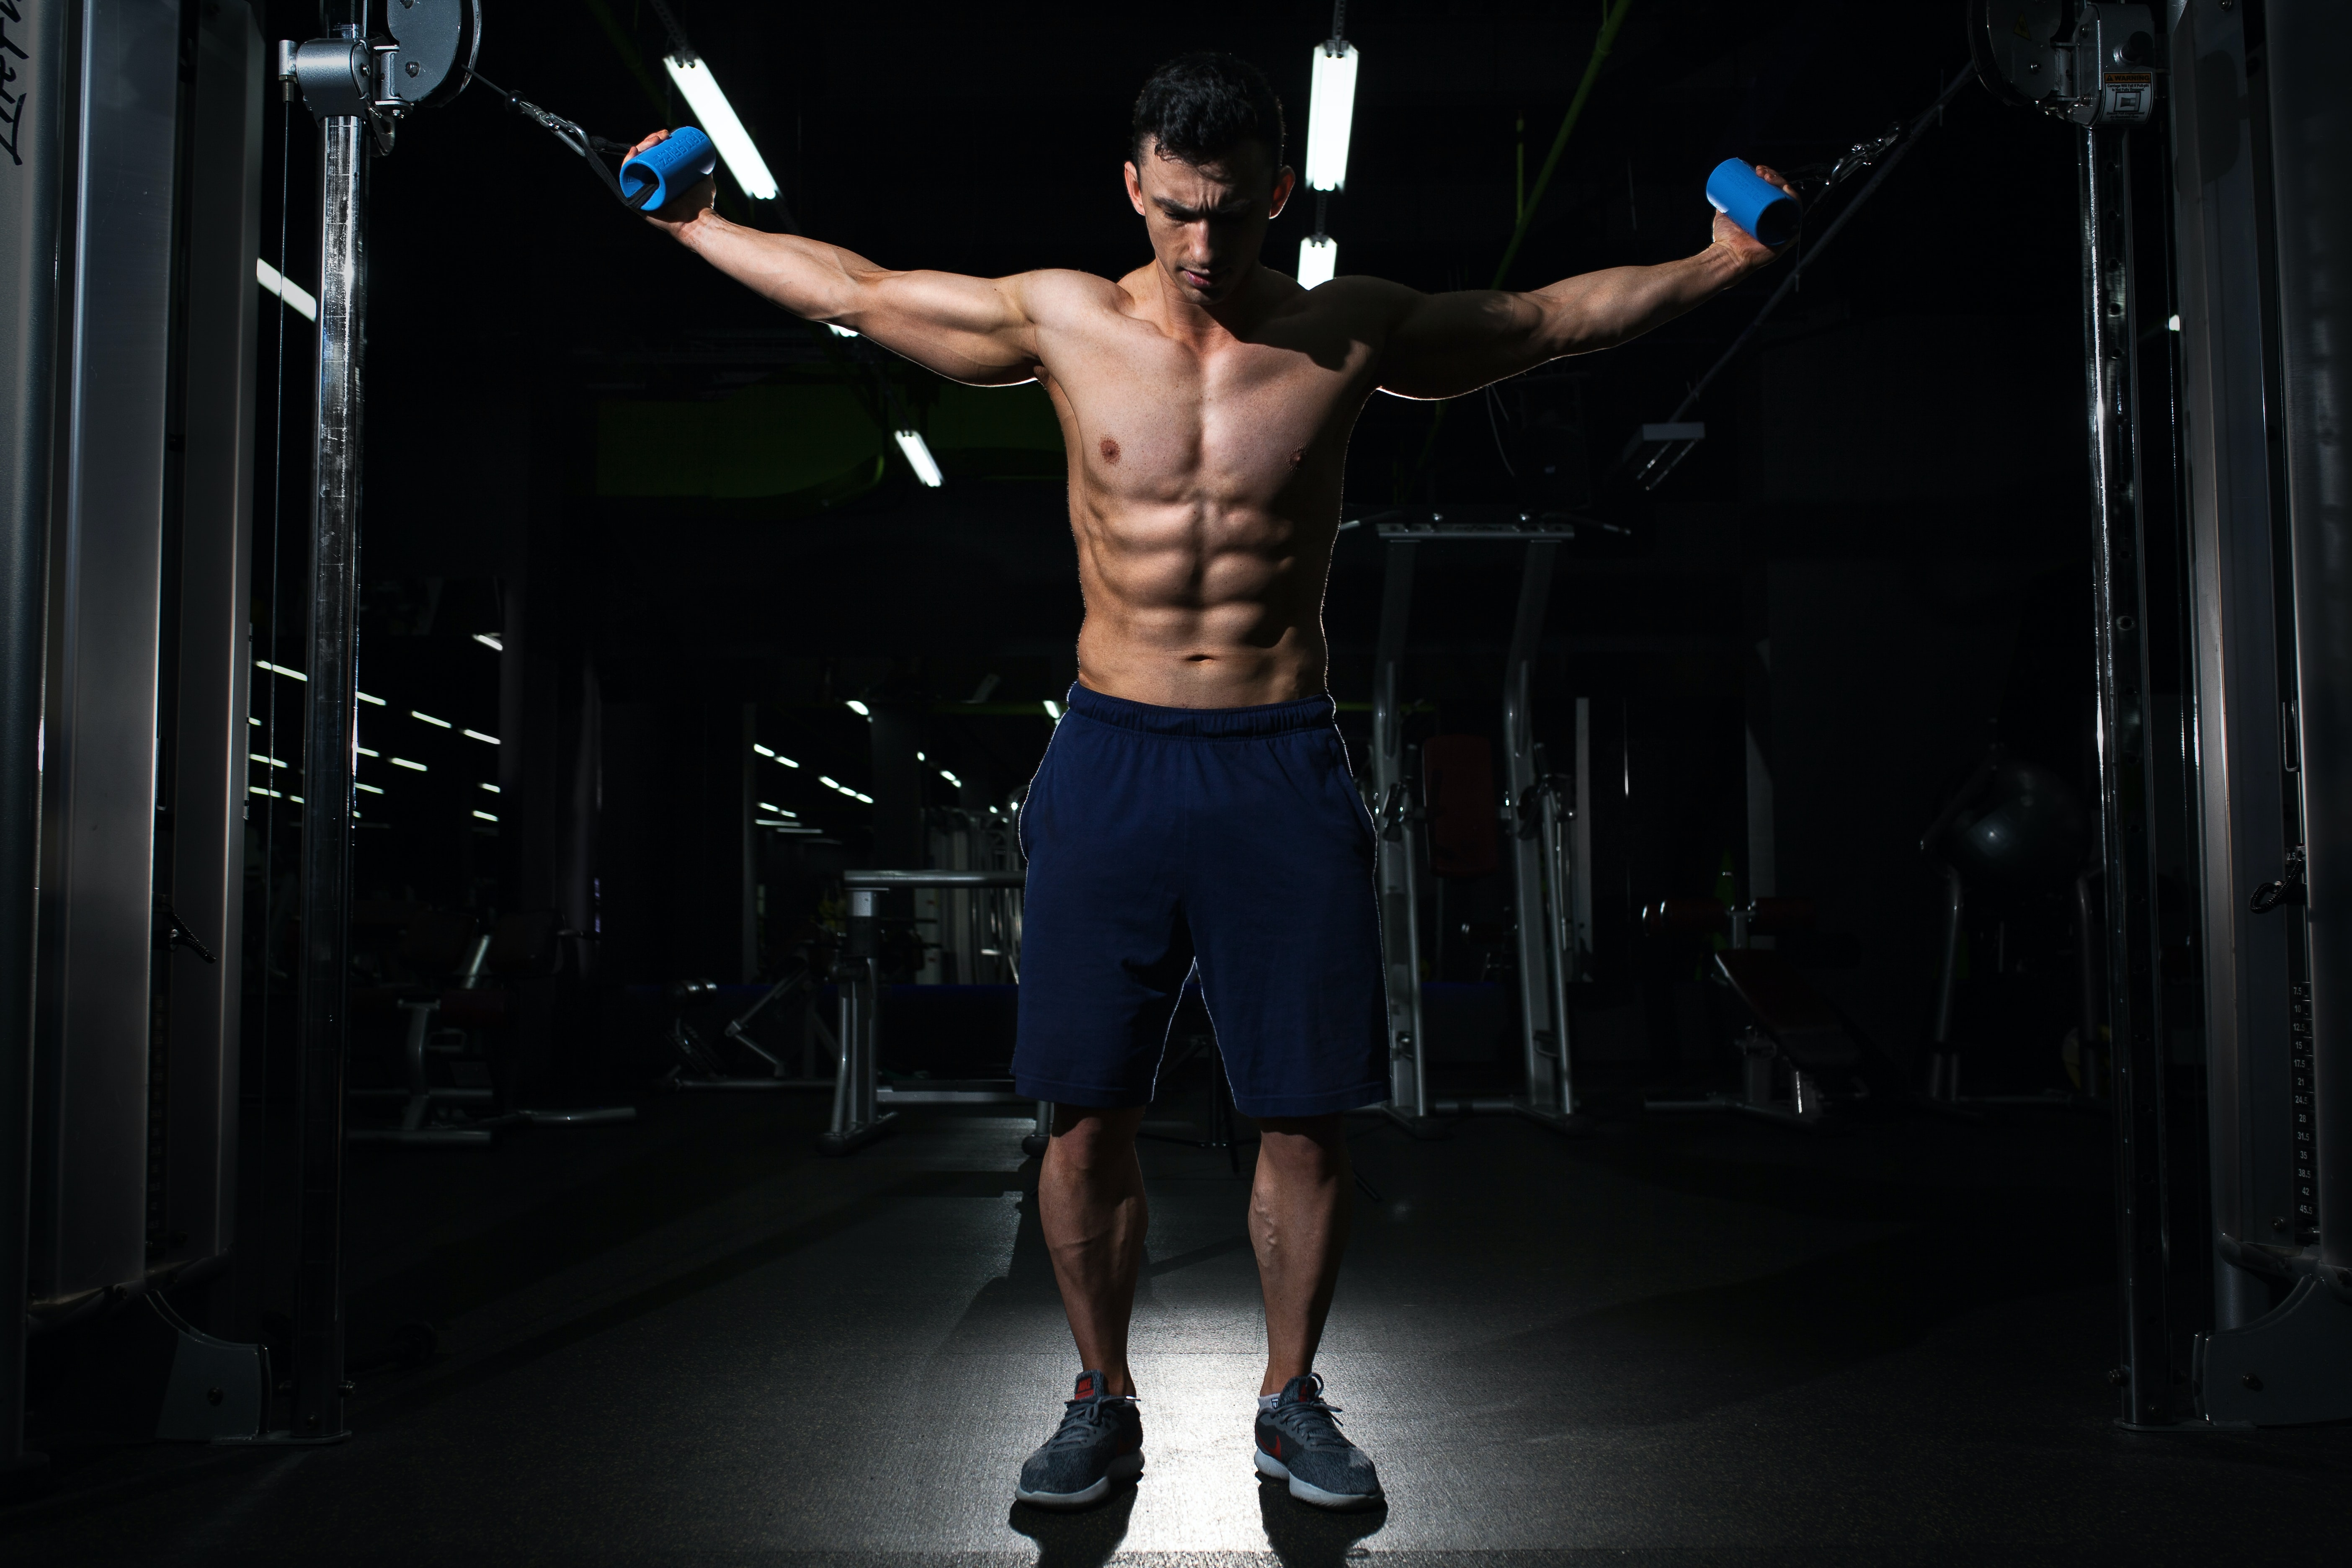 500 Bodybuilding Pictures Hd Download Free Images On